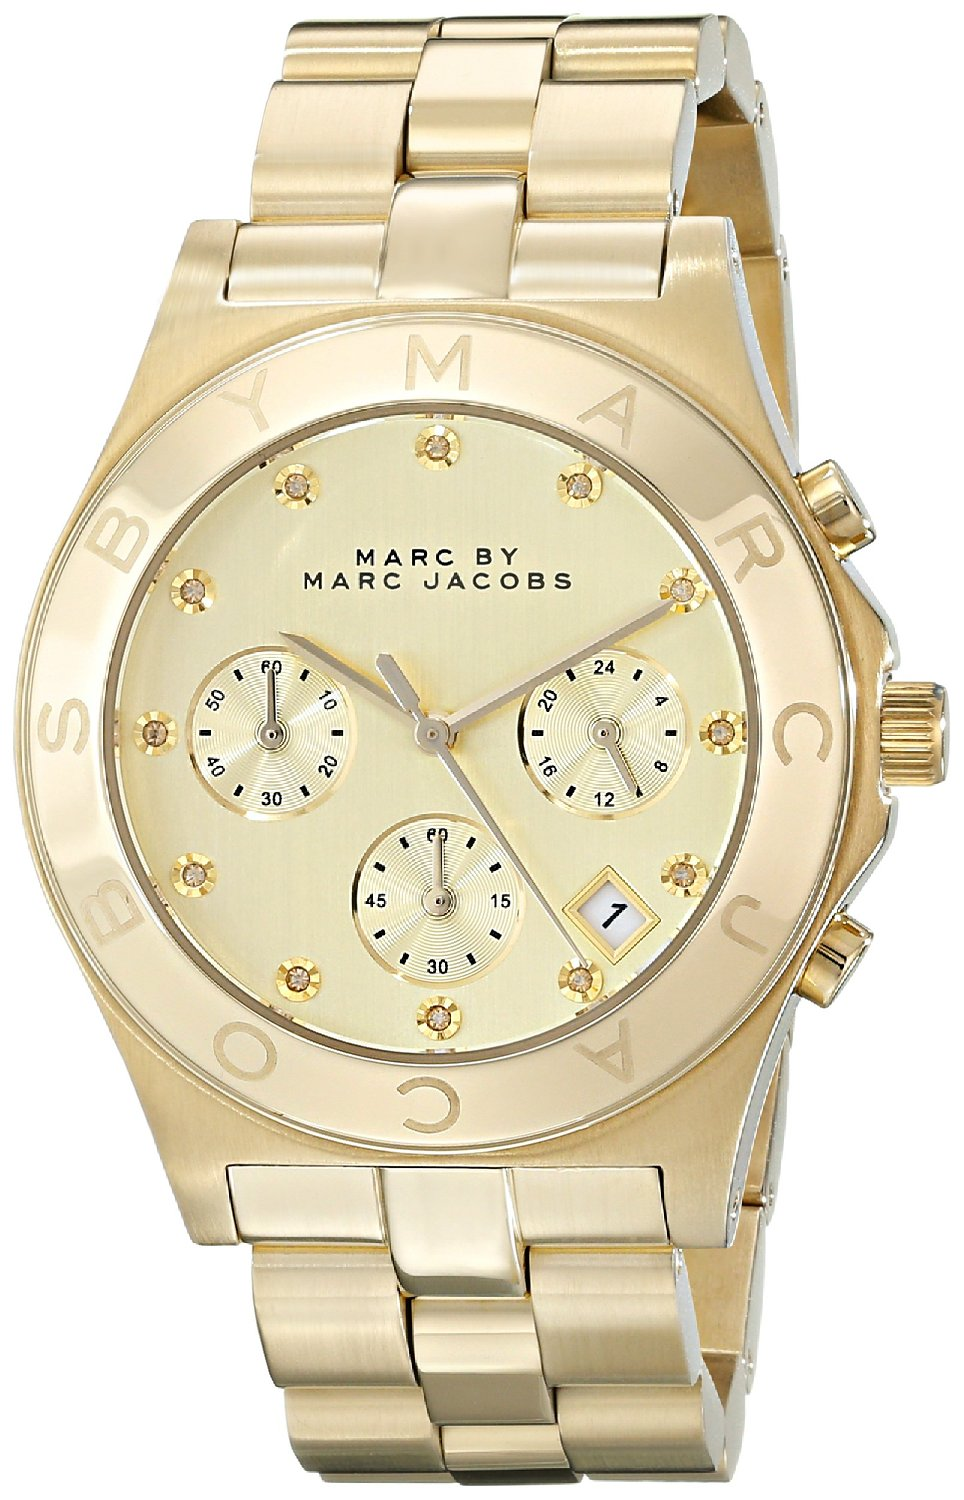 Tone stainless steel watch with link bracelet: marc jacobs: watches